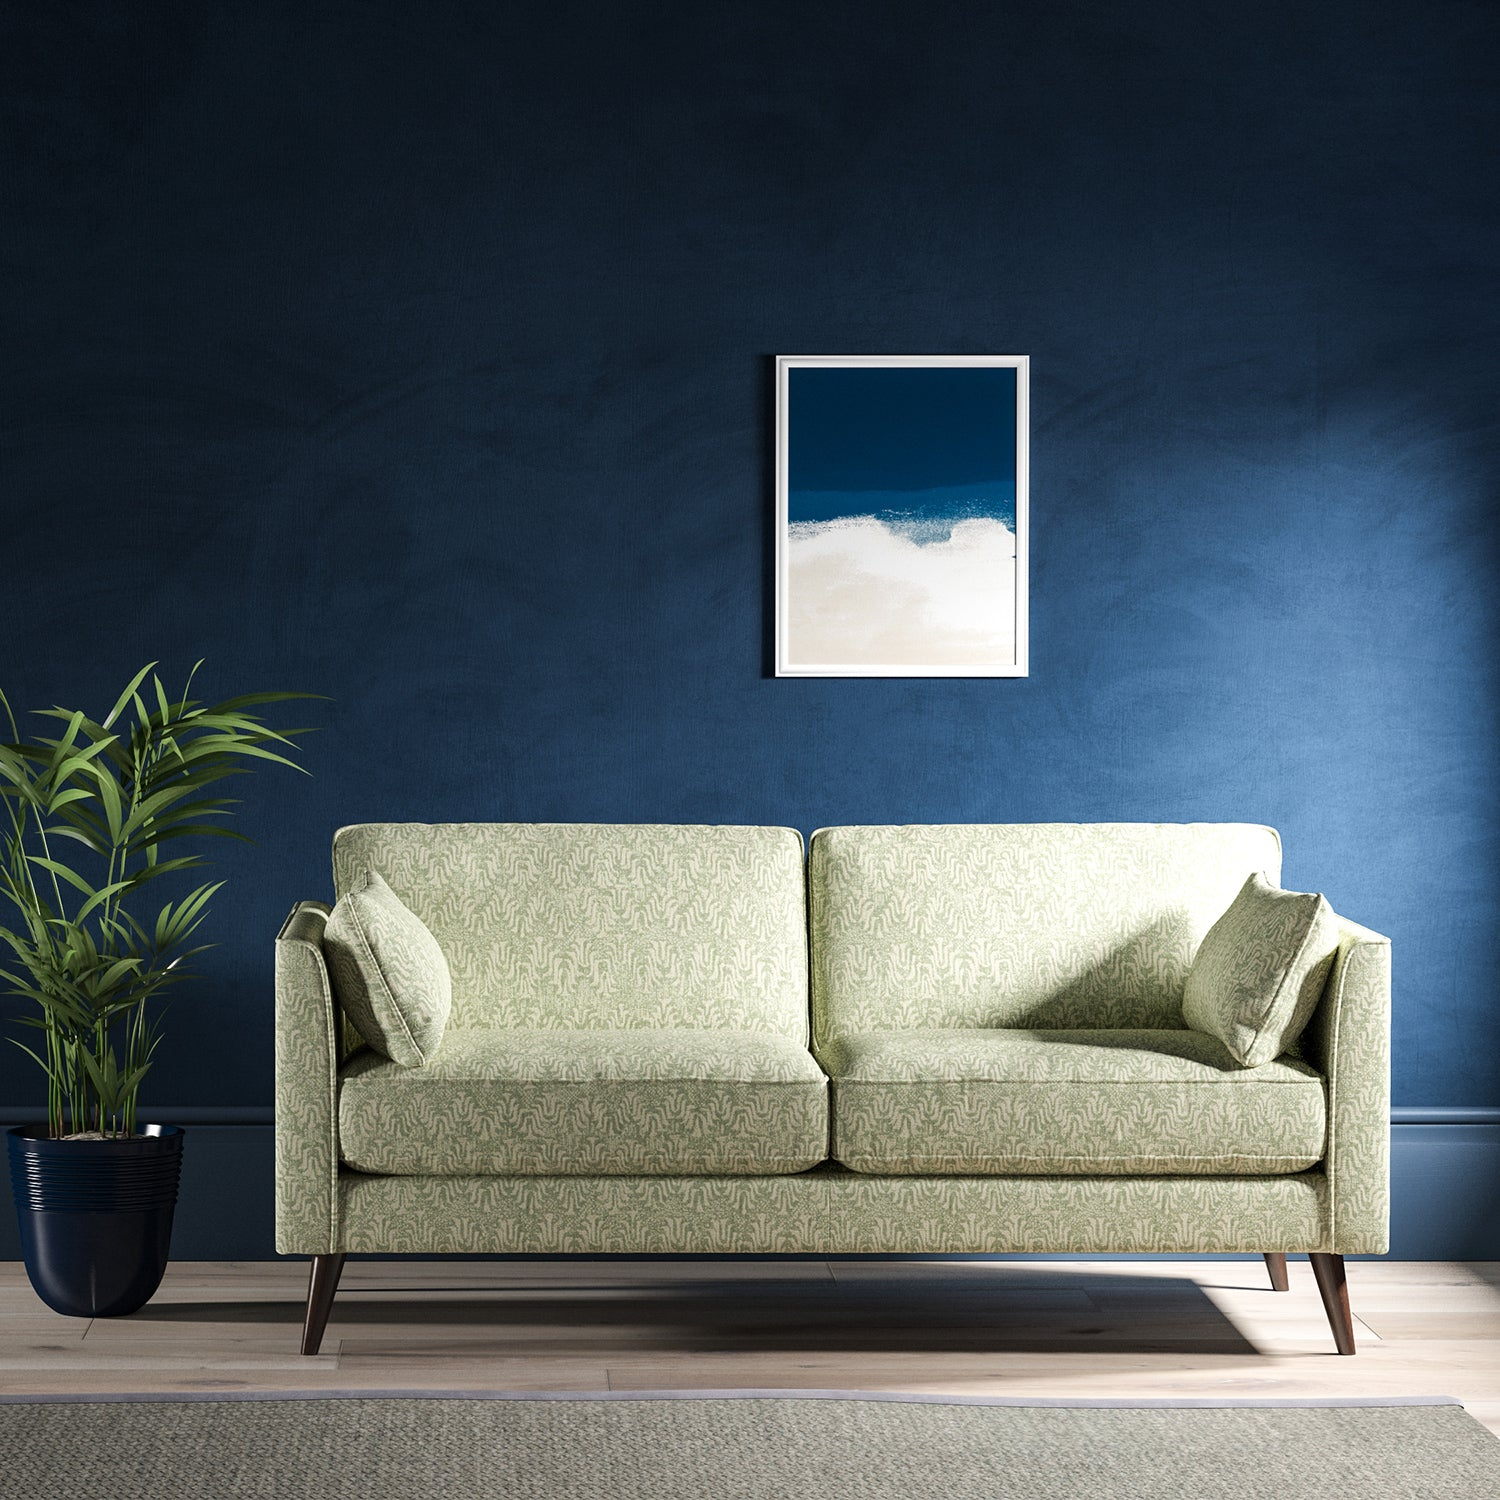 Sofa upholstered in a light turquoise and neutral jacquard weave upholstery fabric